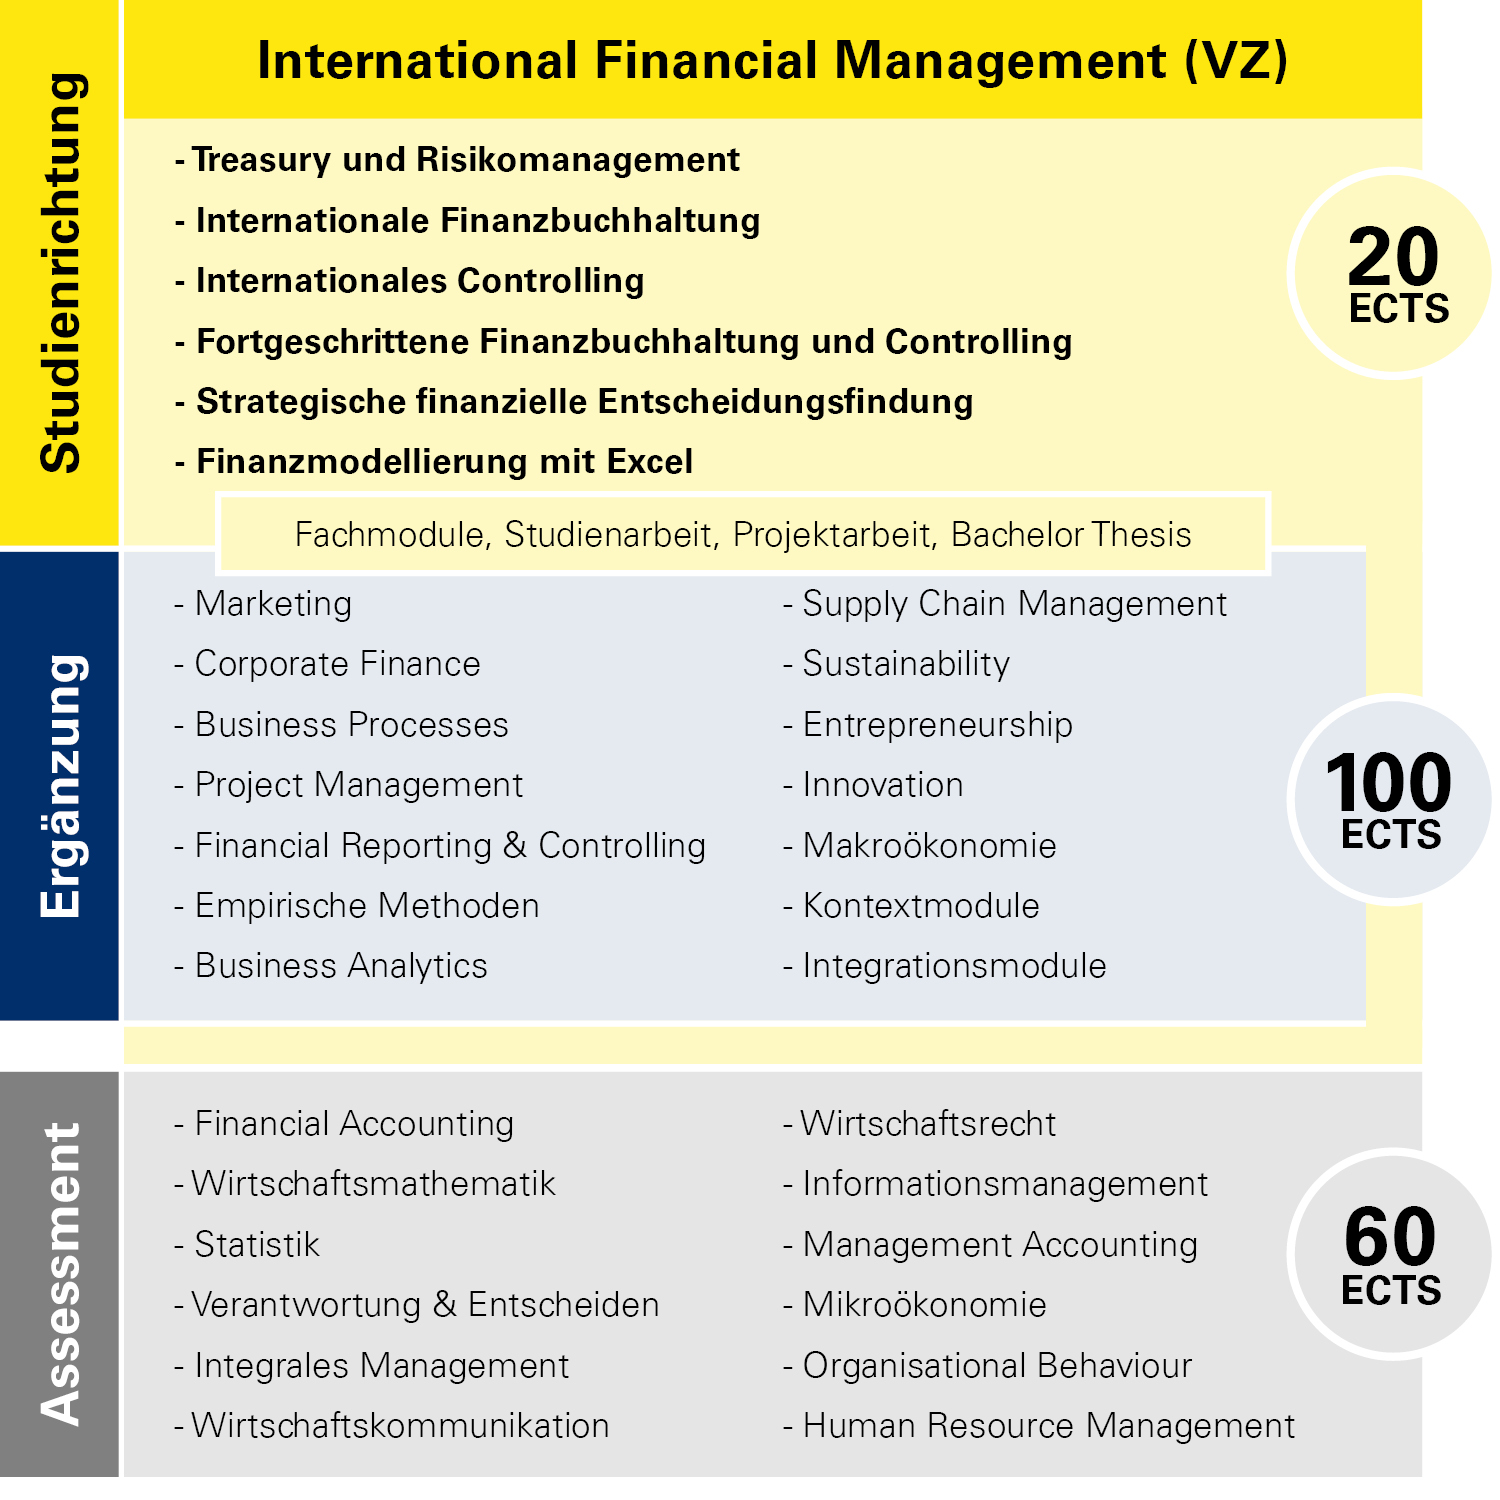 Modulübersicht International Financial Management Vollzeit